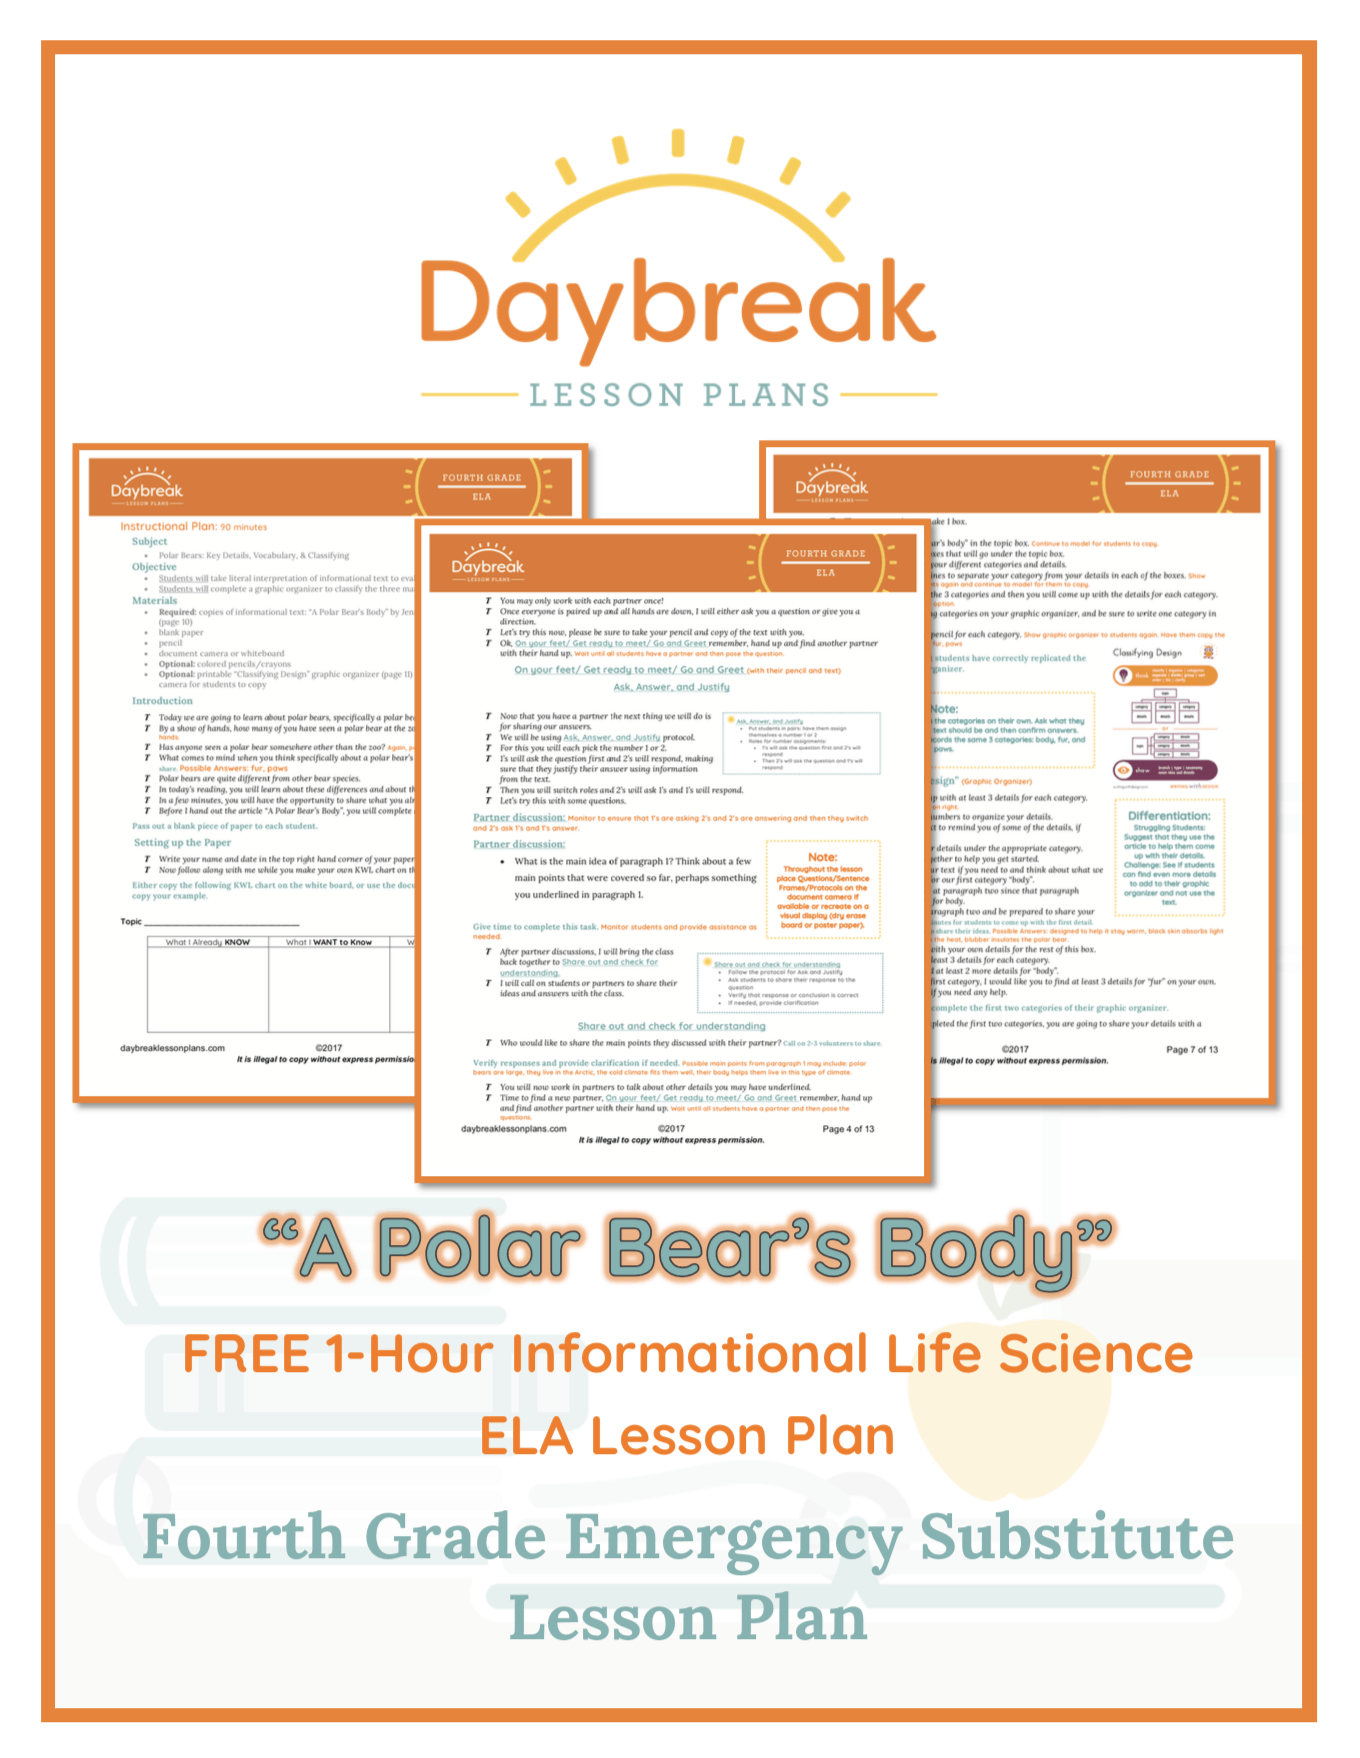 Illustration of the free 4th Grade ELA lesson plan covers